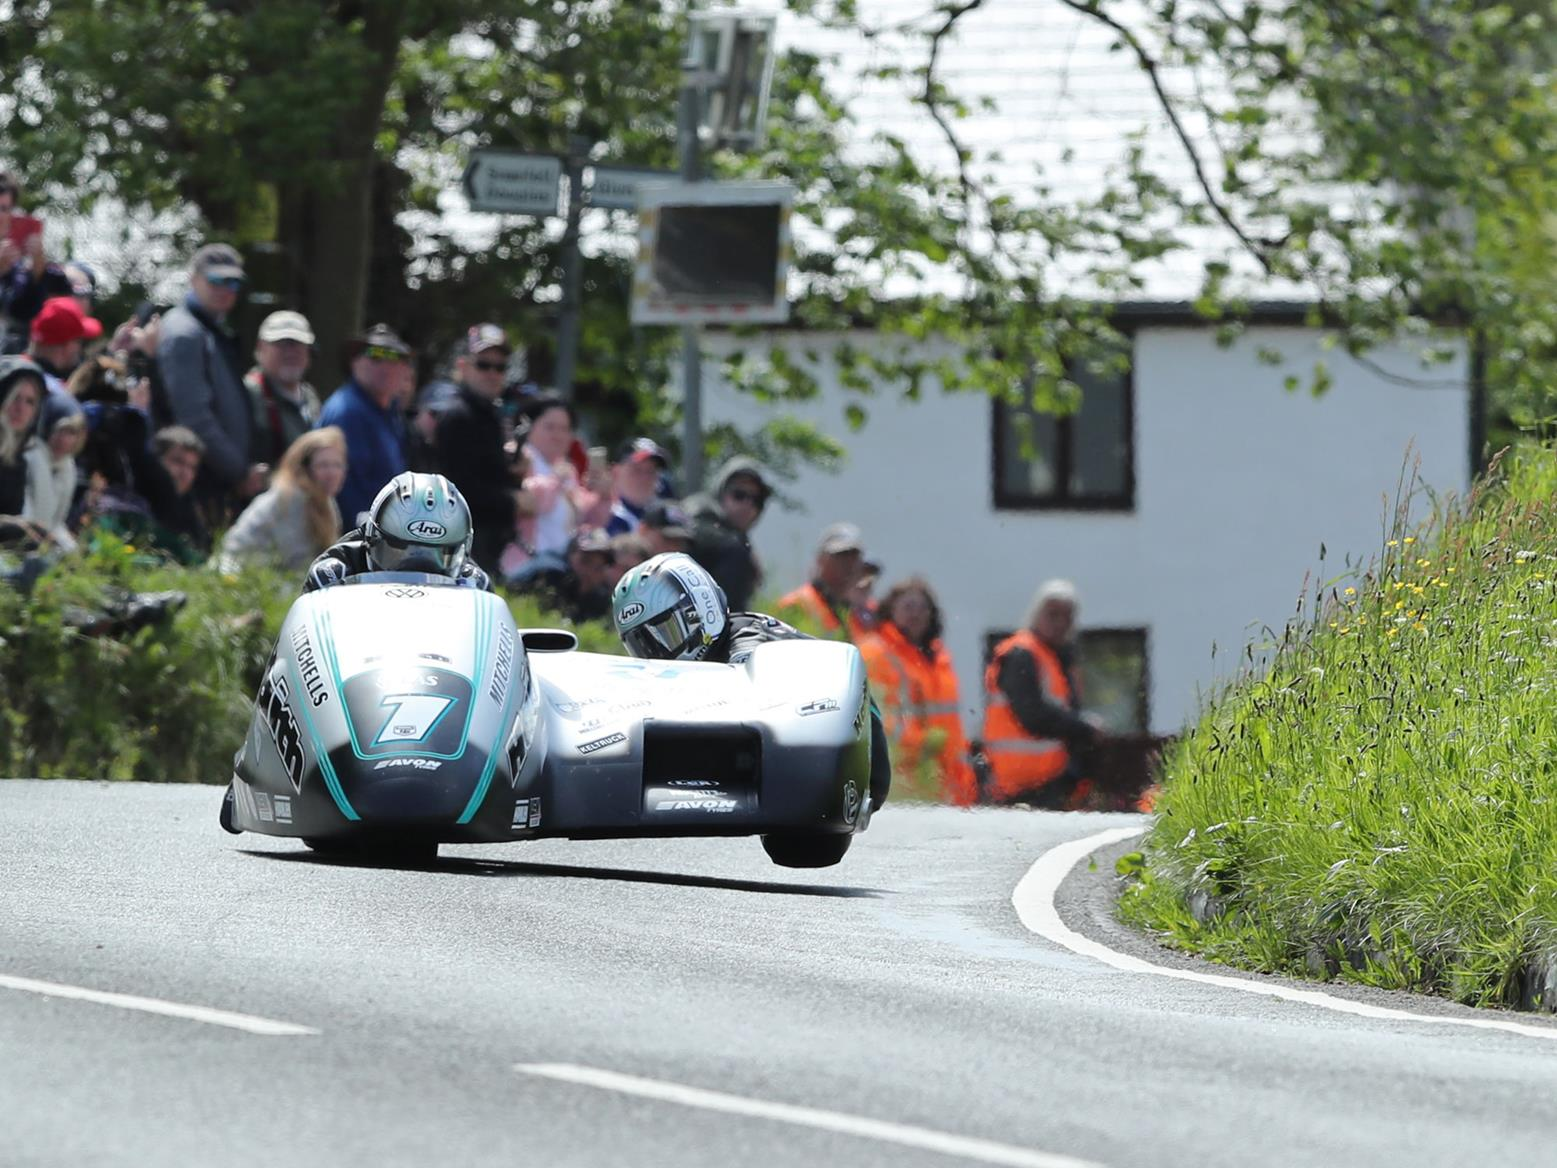 Ben and Tom Birchall in their 2019 sidecar at the TT